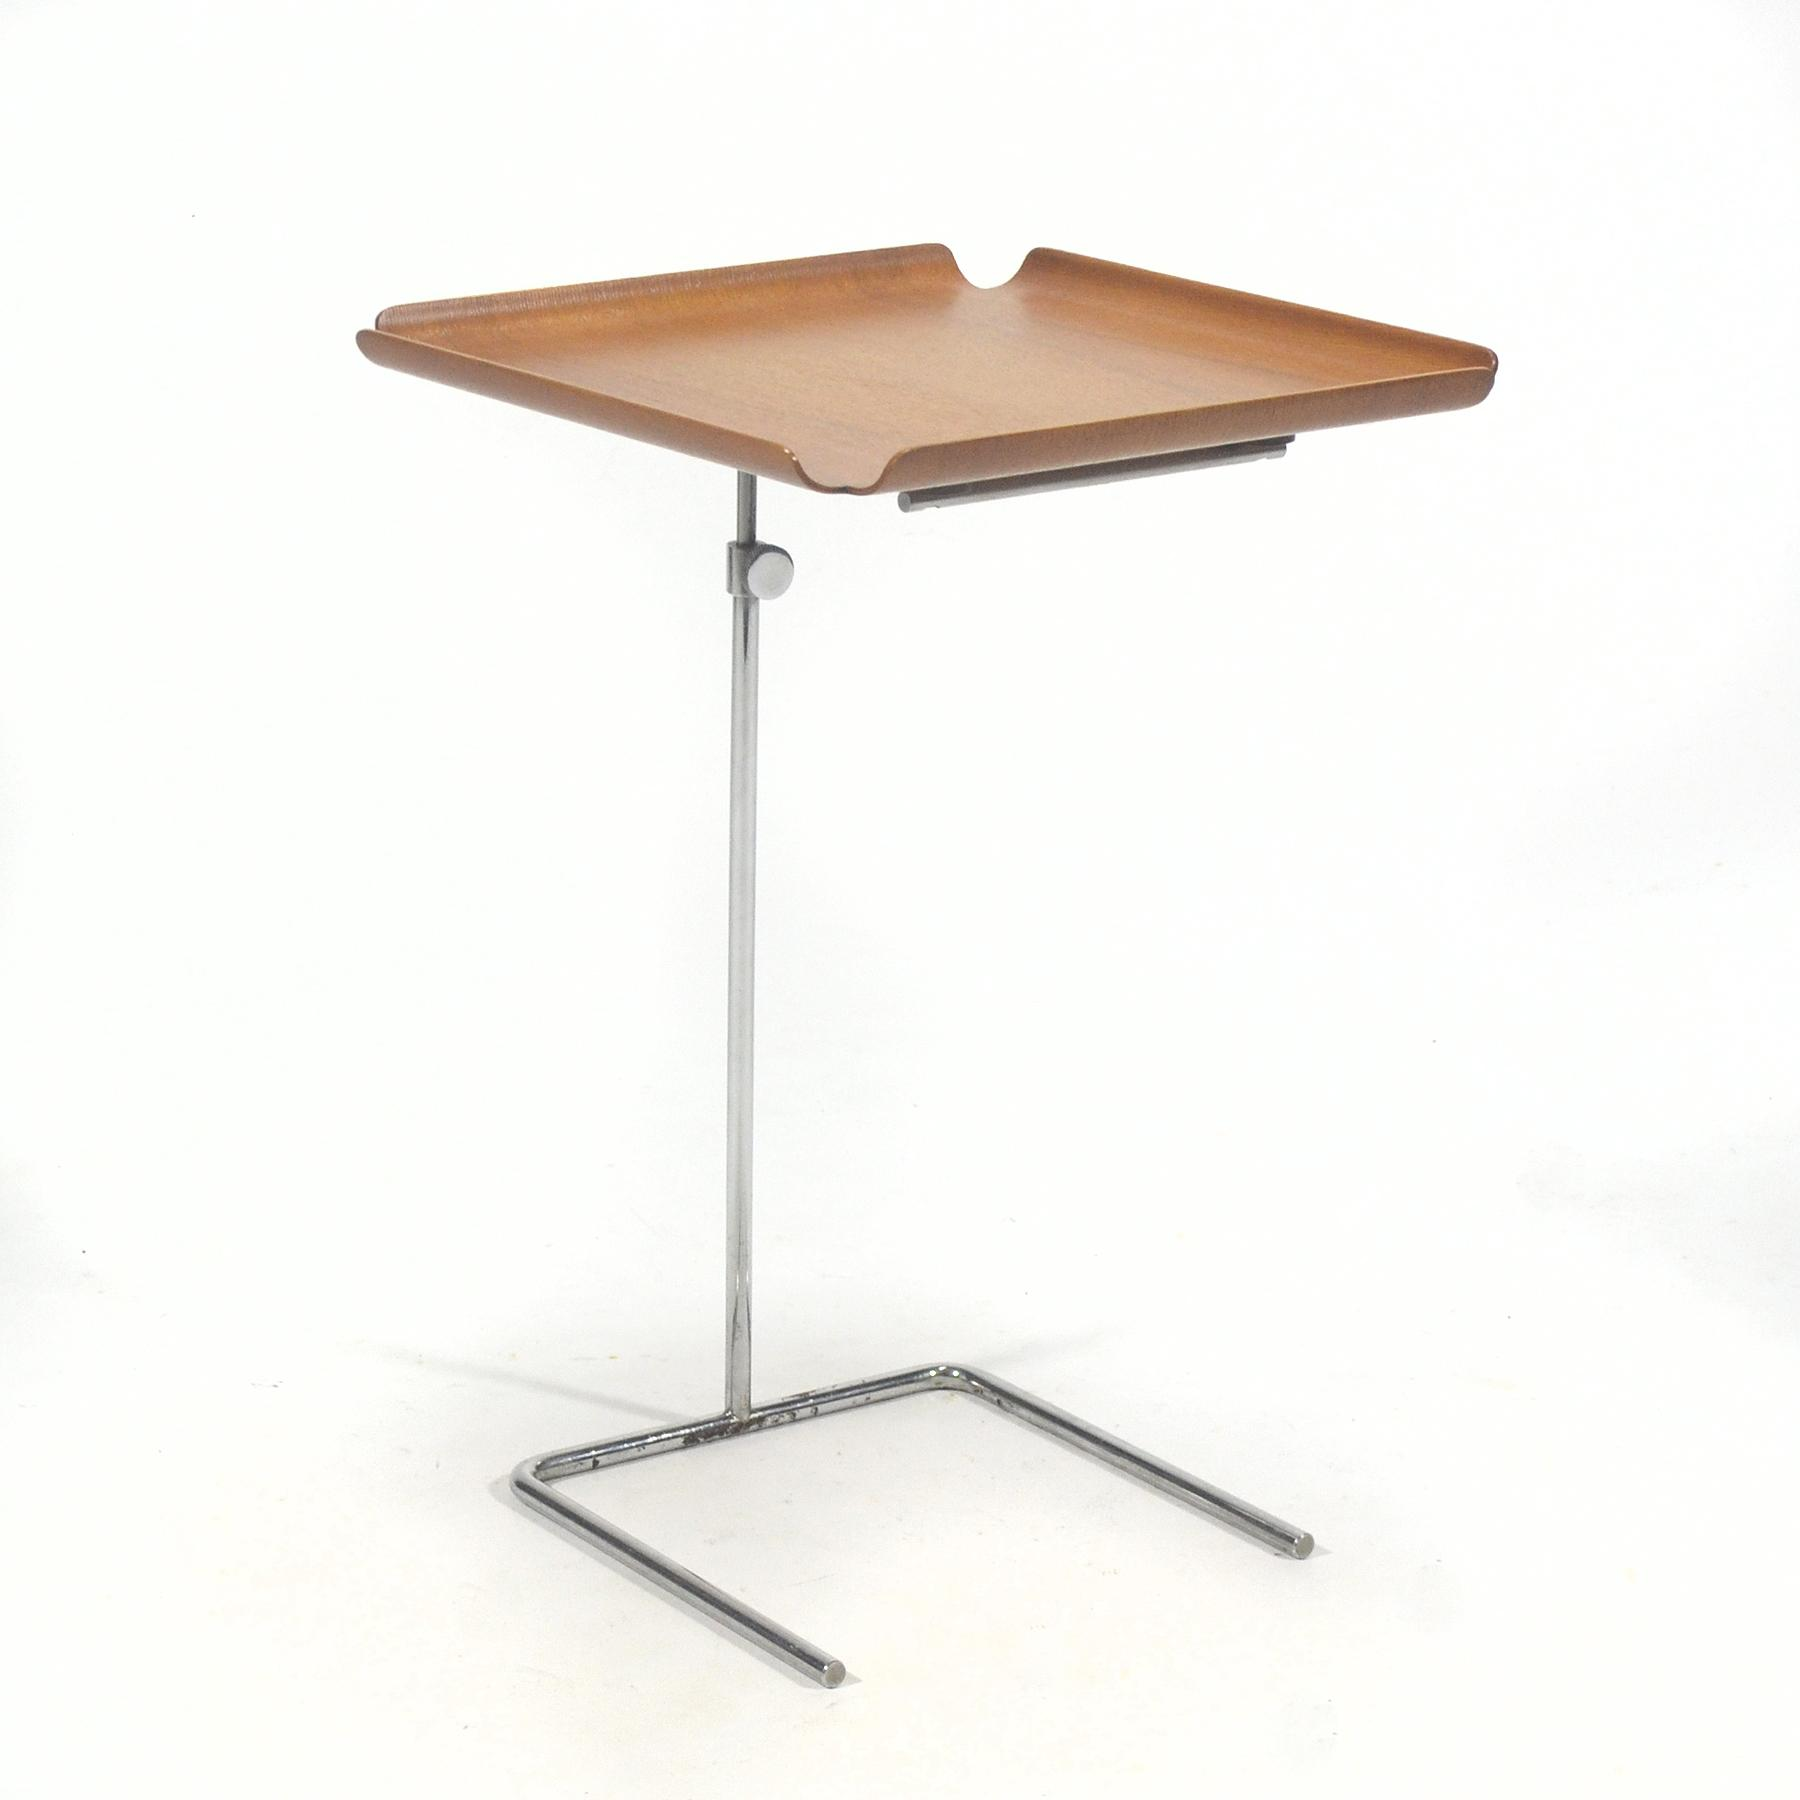 George Nelson Adjustable Tray Table By Herman Miller   Image 3 Of 11